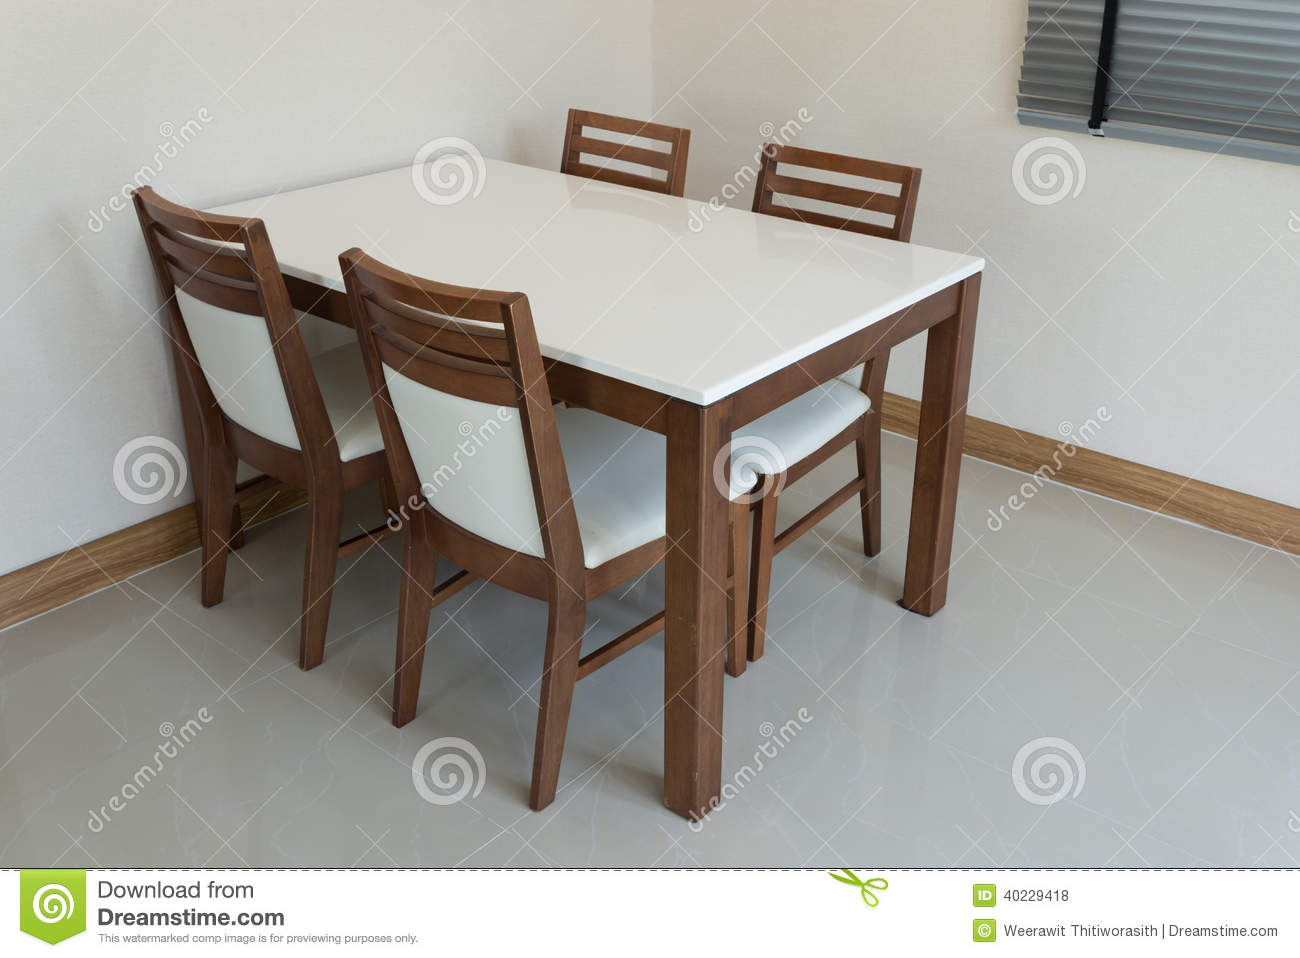 Table de salle manger en bois photo stock image 40229418 for Tables de salle a manger en bois